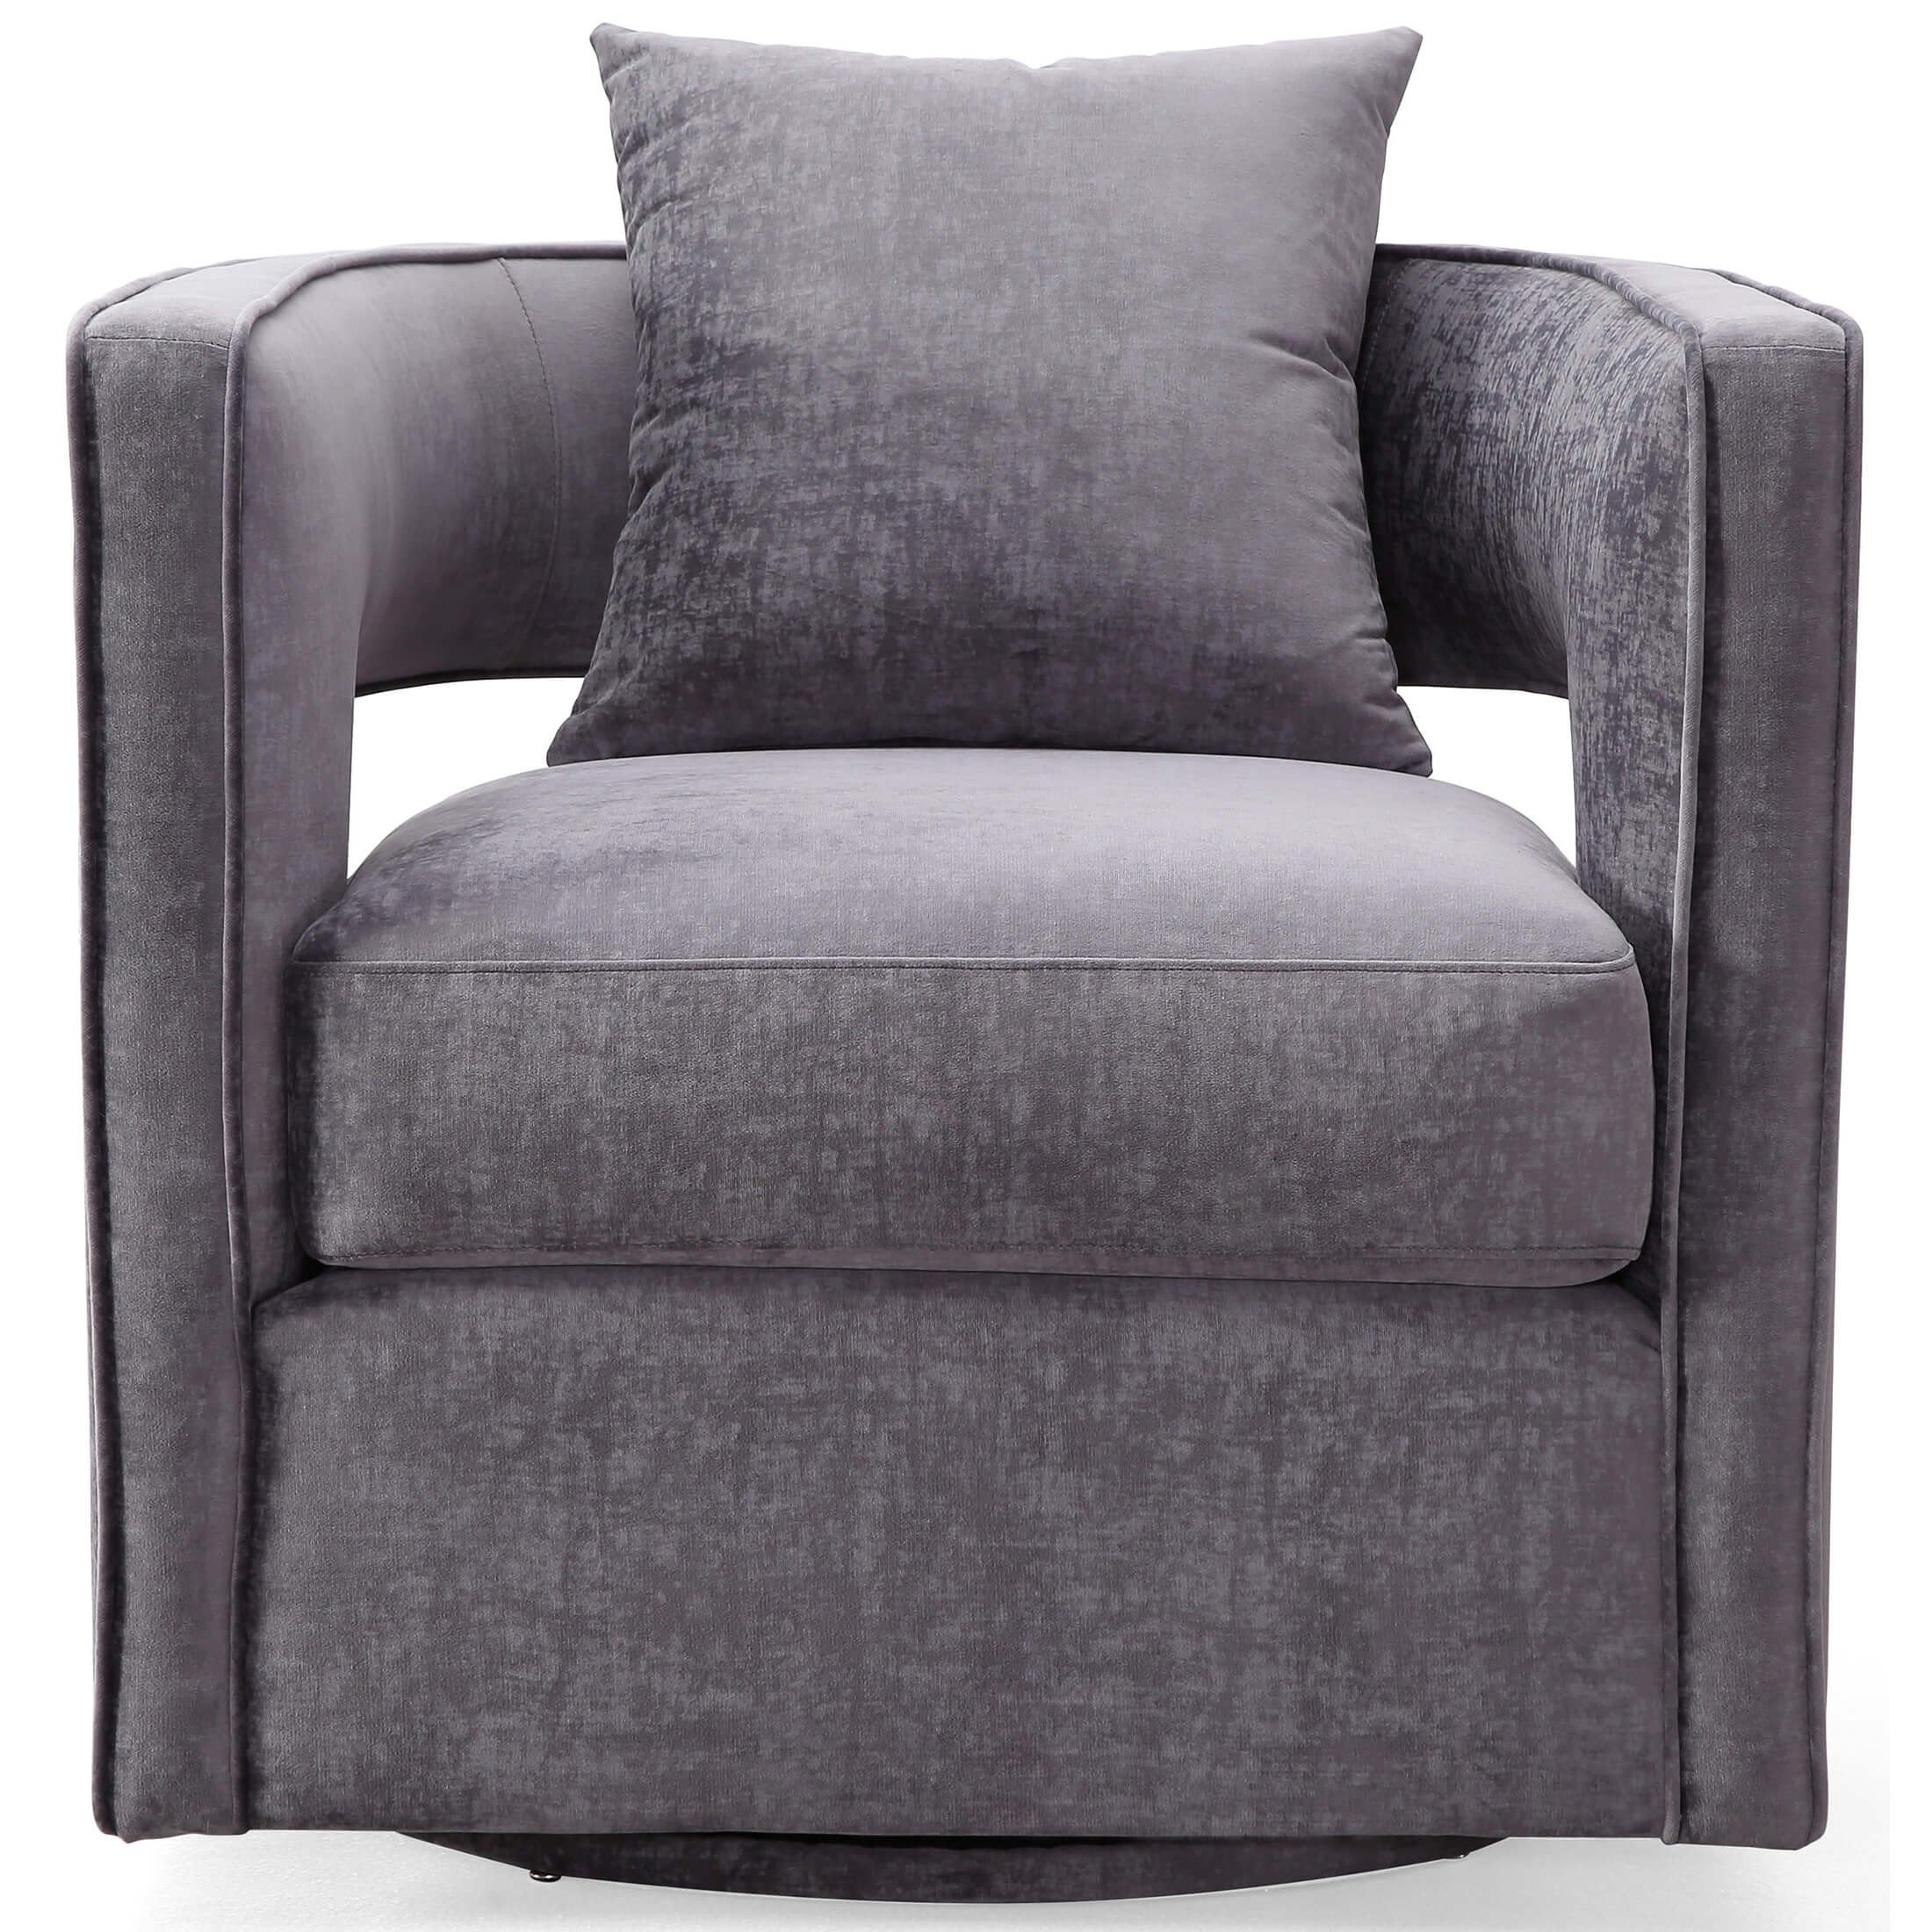 Picture 31 Of 35 – Oversized Round Chair Inspirational Sofas Intended For Sofas With Swivel Chair (View 8 of 10)